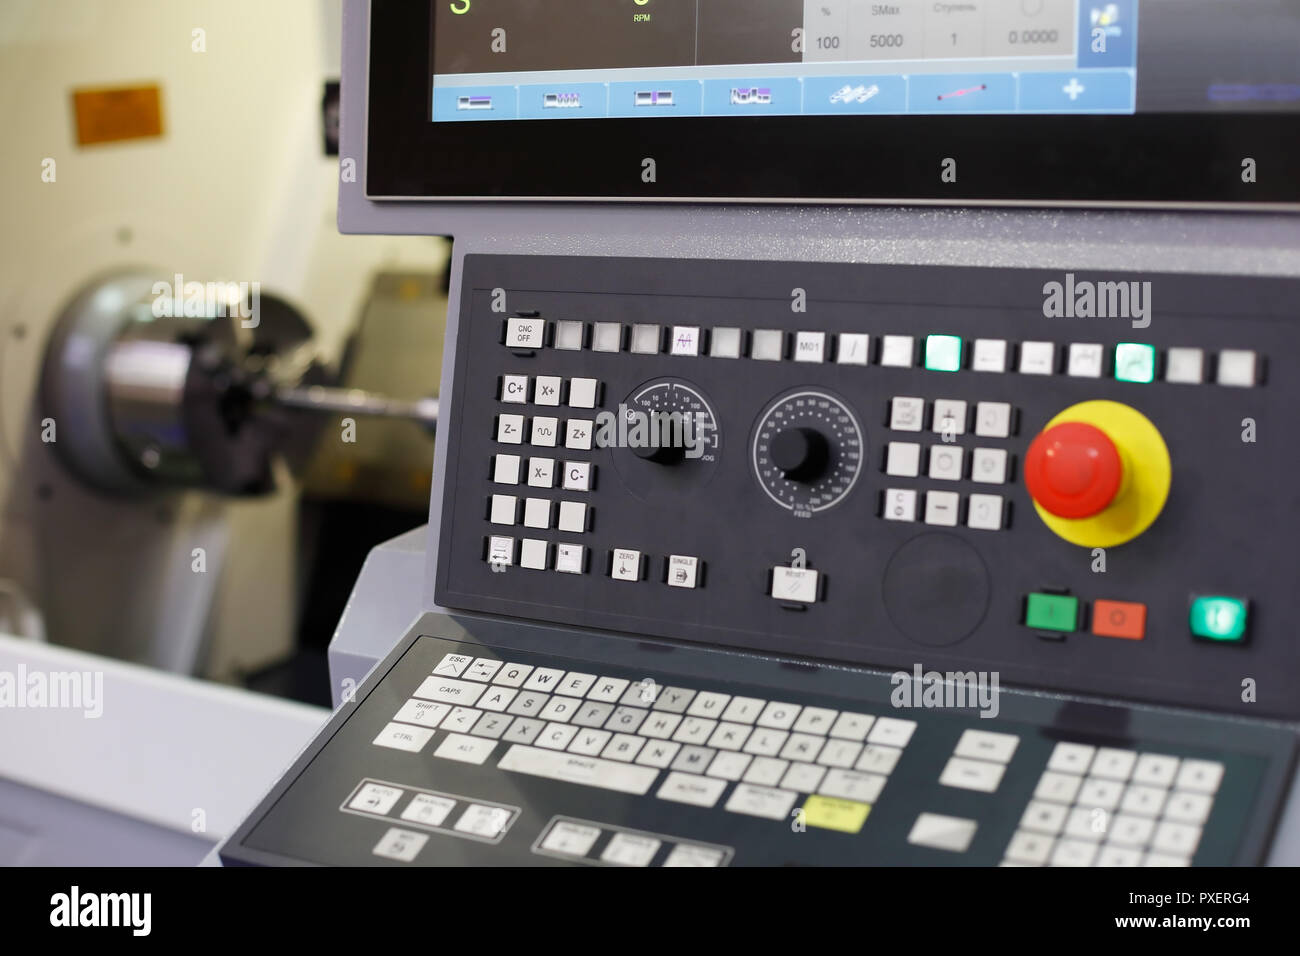 CNC lathe machine with a control panel. Selective focus. - Stock Image